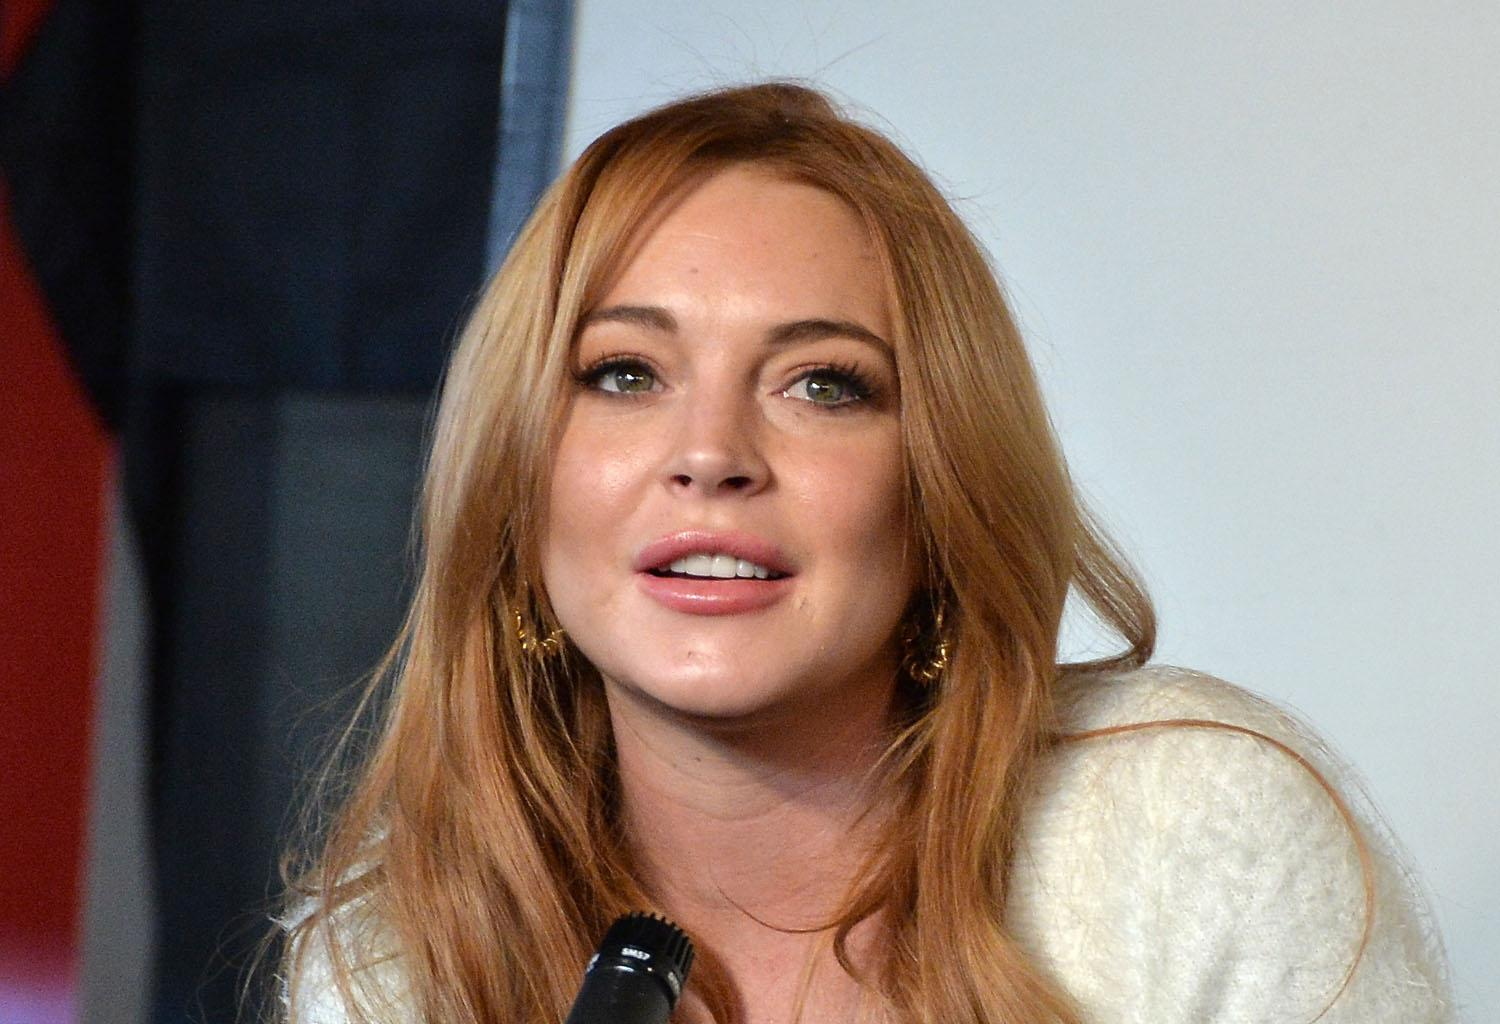 Lindsay Lohan Seems To Flirt With Miley Cyrus' Ex, Liam Hemsworth - Says She Wanted To Meet Up!